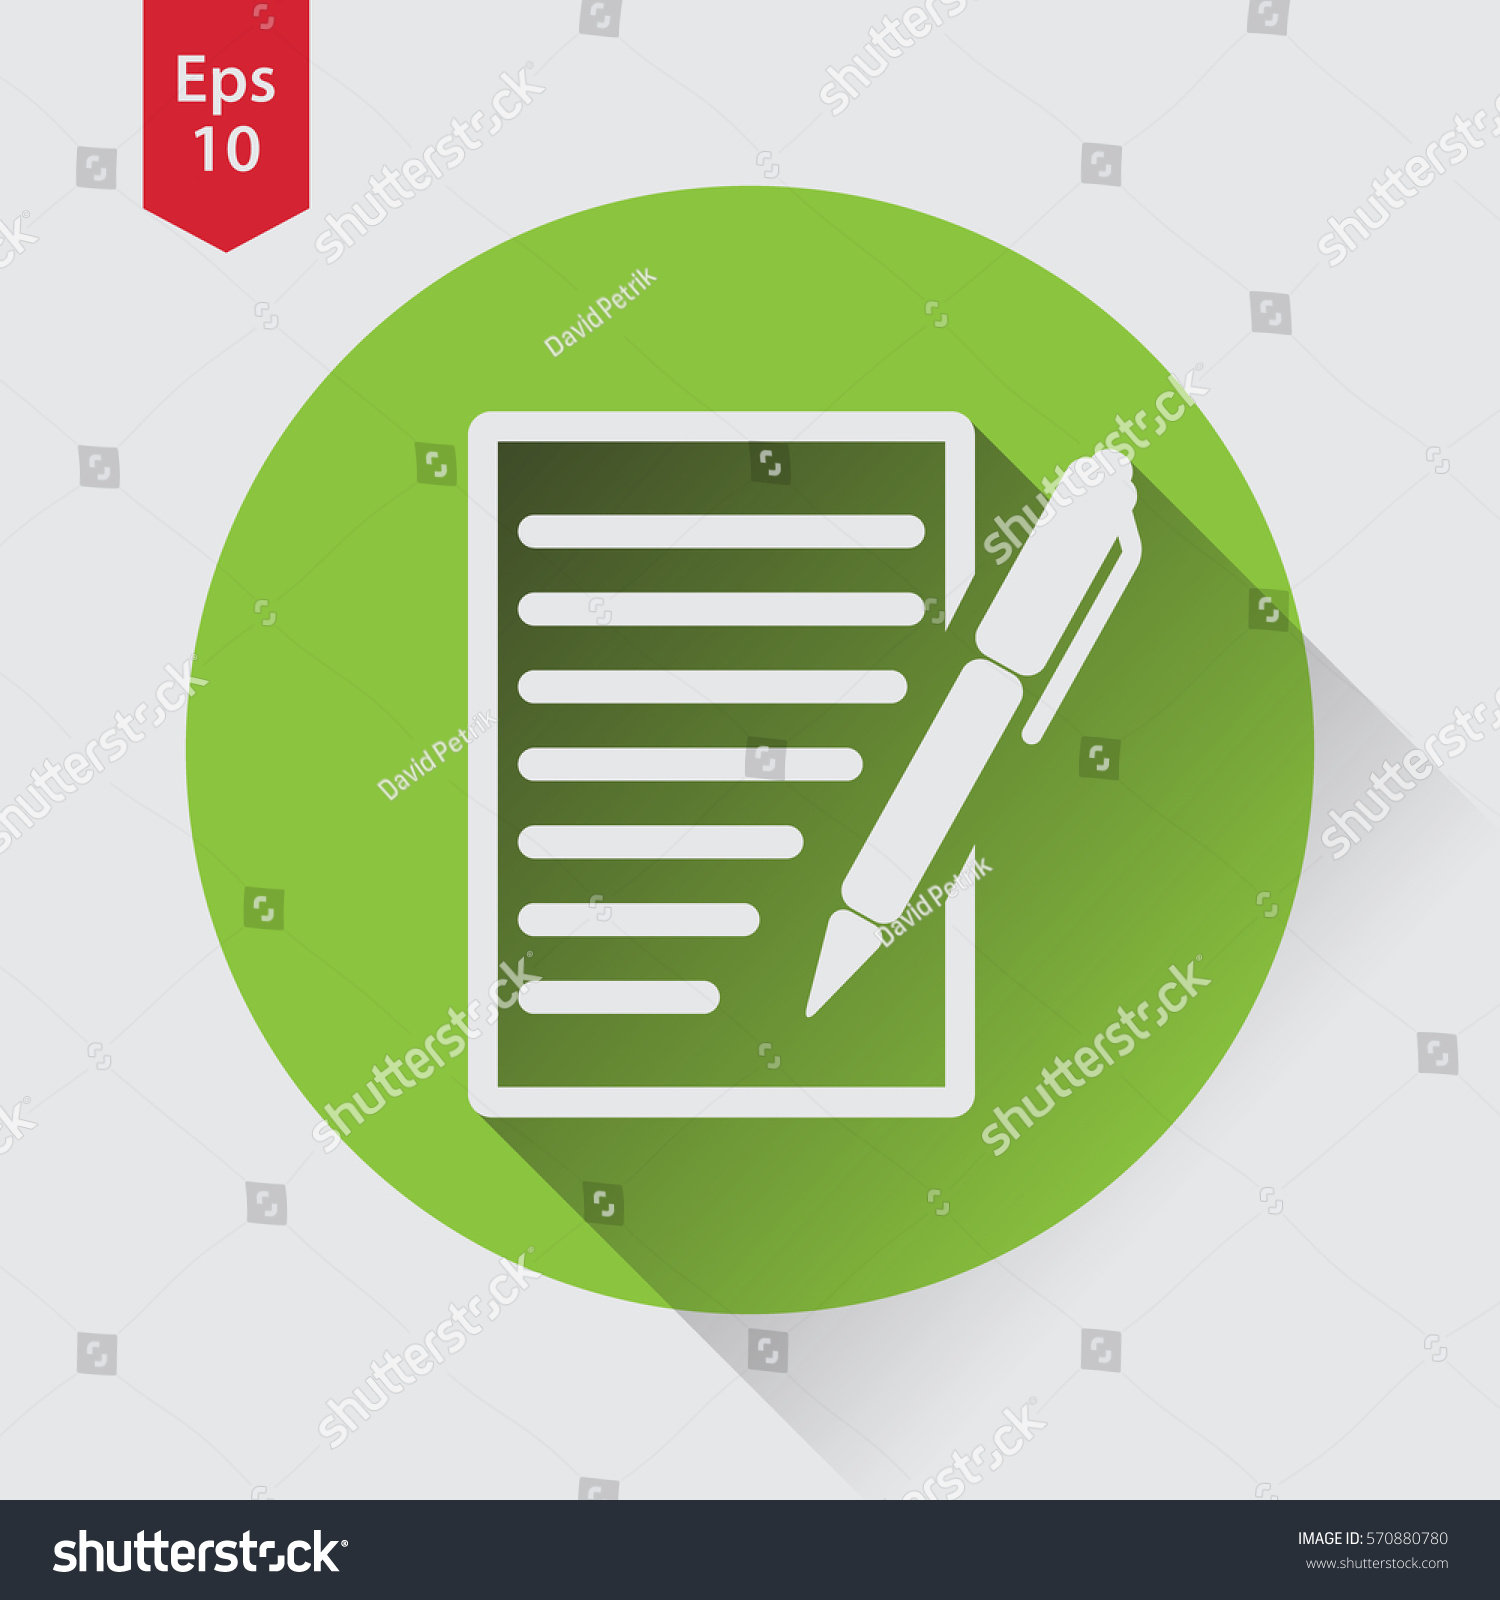 Notepad symbol simple flat icon paper stock vector 570880780 notepad symbol simple flat icon of paper and pen notebook with some text biocorpaavc Choice Image